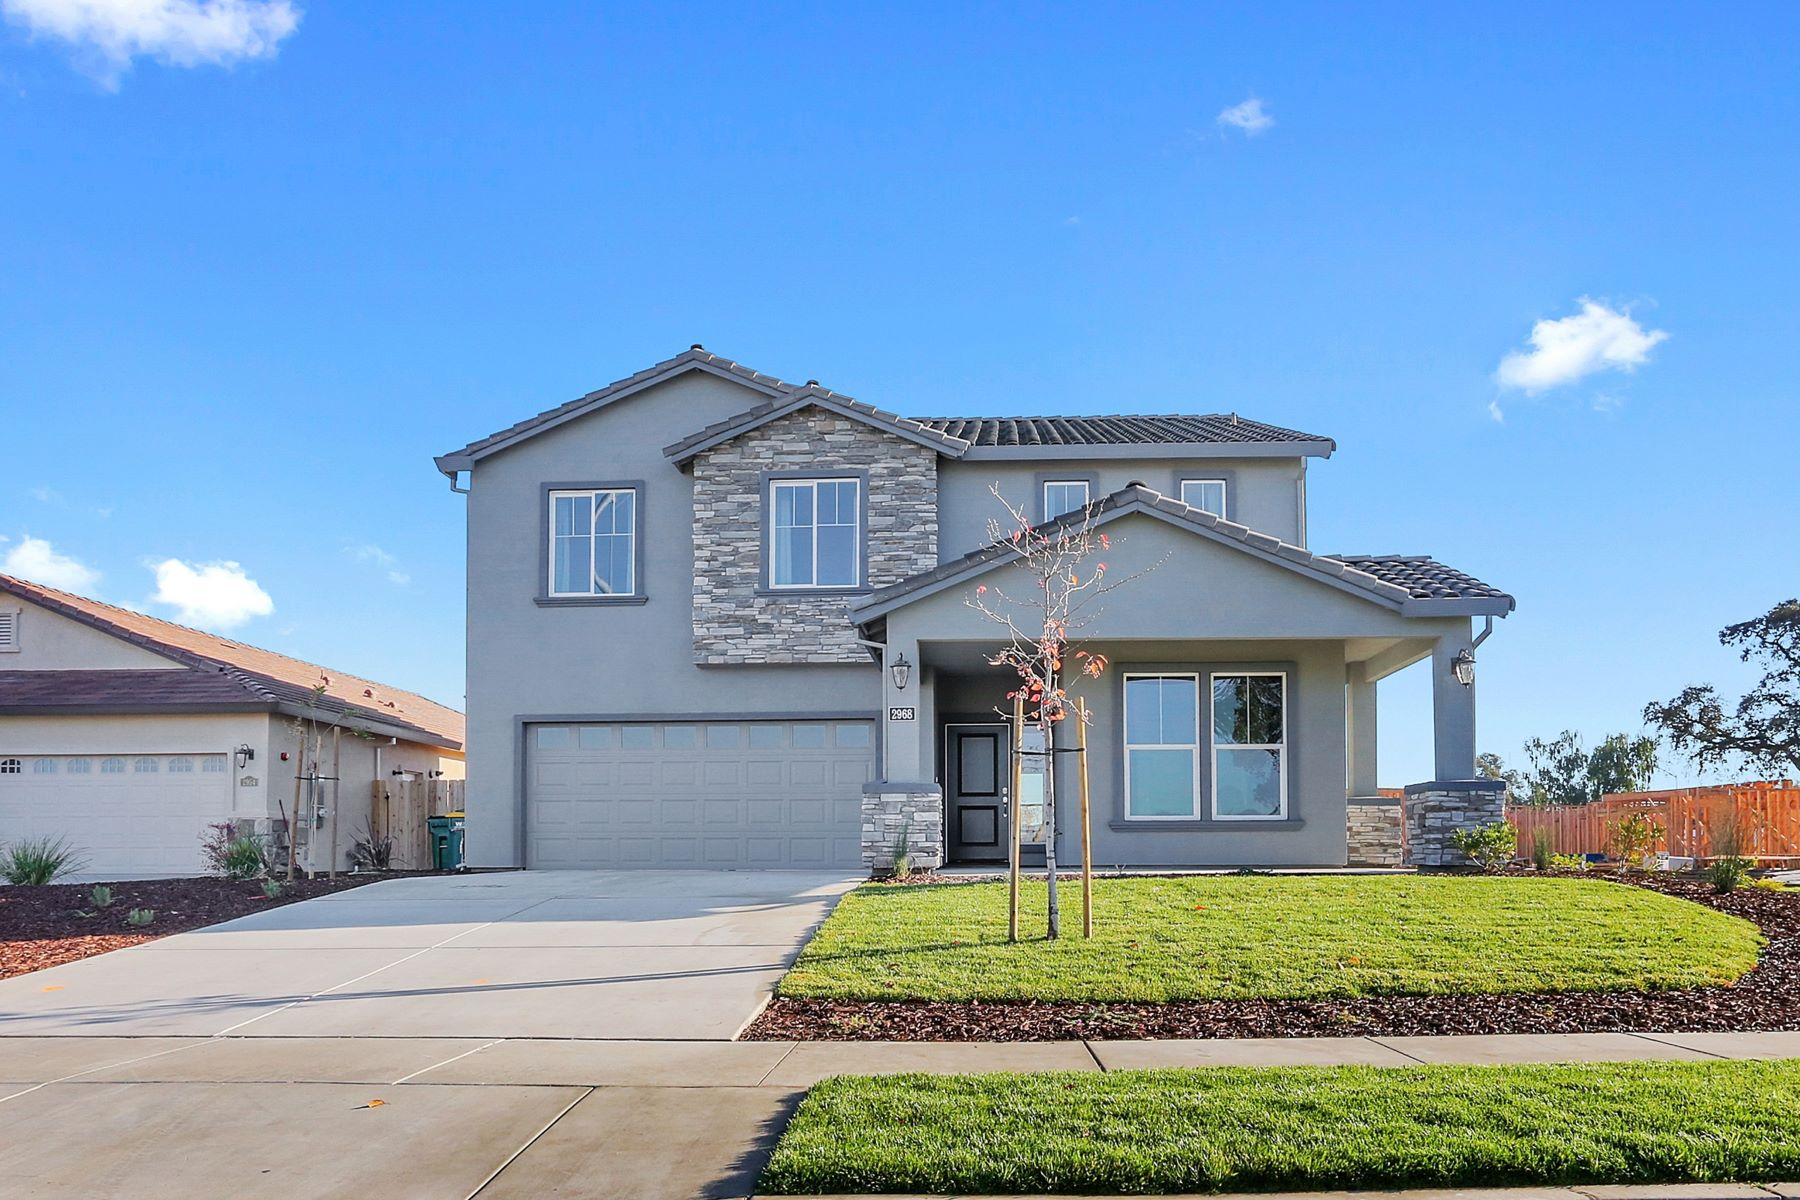 Additional photo for property listing at 1870 Old Oak Drive, Stockton 1870 Old Oak Drive Stockton, California 95206 United States